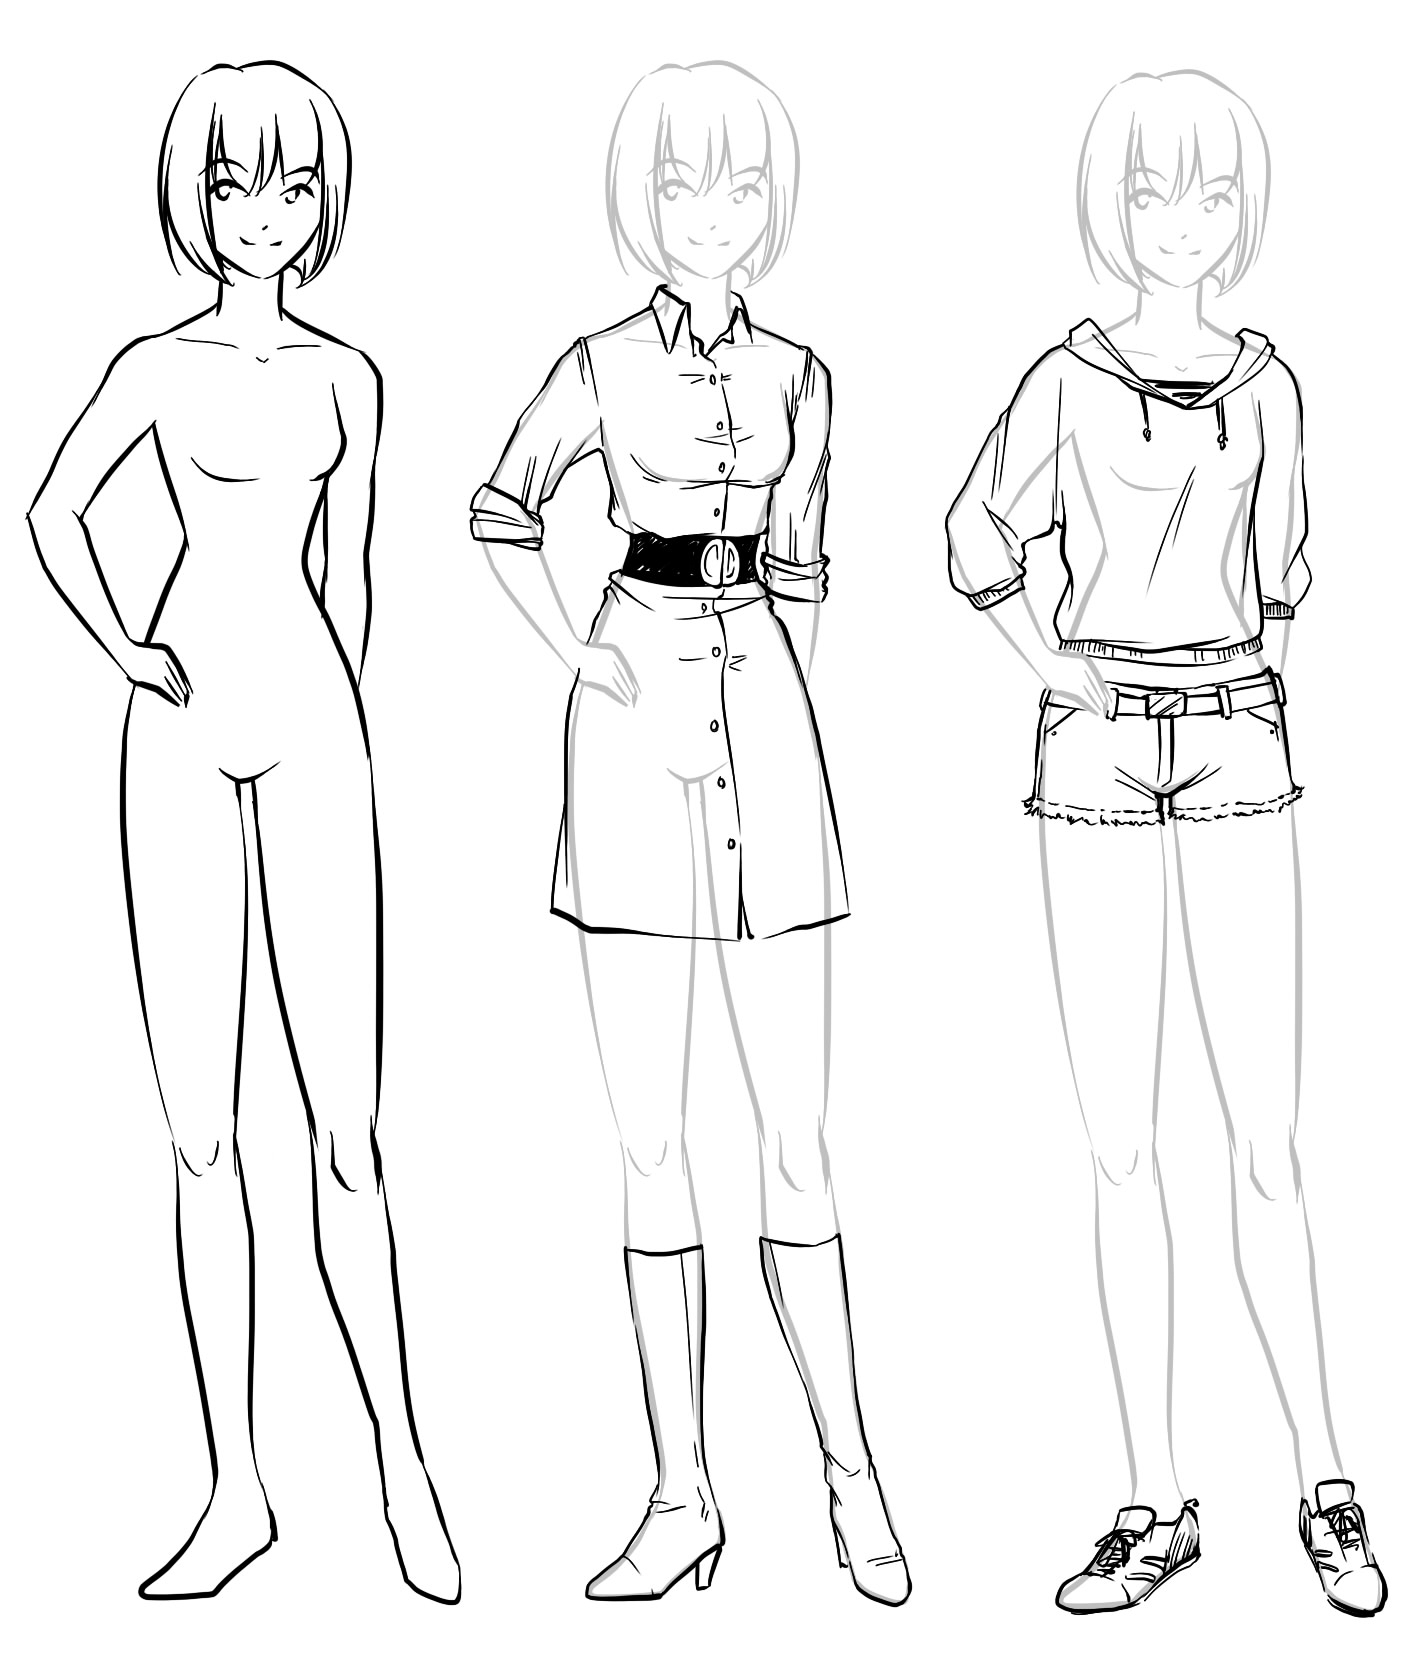 1428x1654 Anime Clothing Drawing Anime Girl Full Body Drawing With Clothes